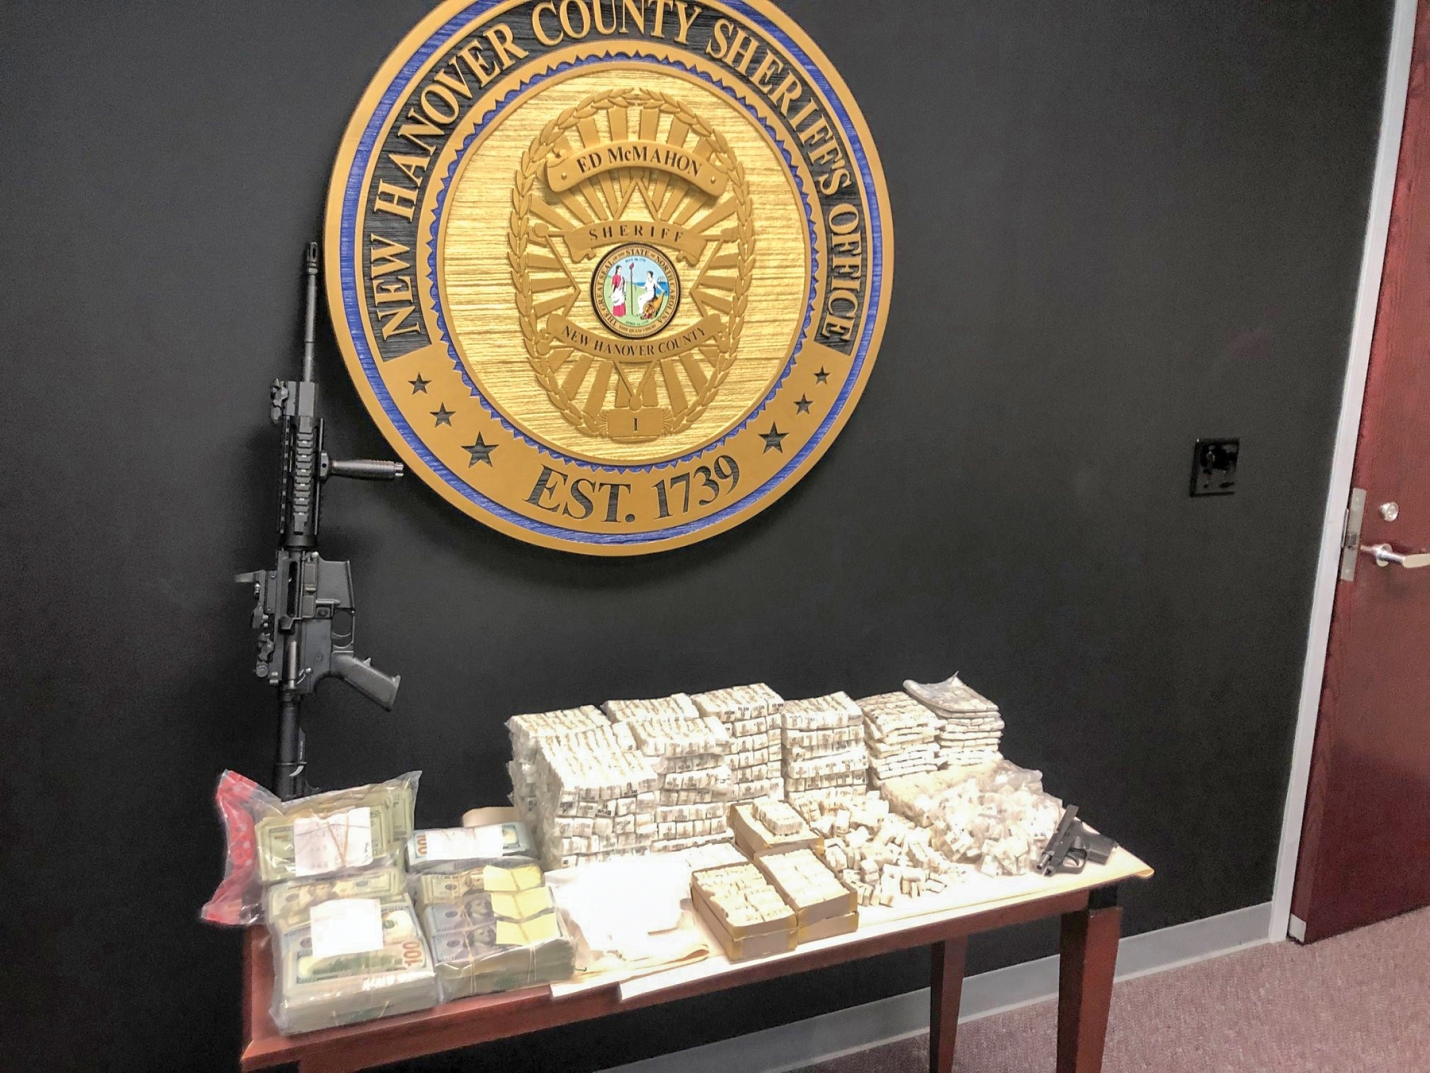 The New Hanover County Sheriff's Department recently arrested two people following a two-month investigation and discovered 39,000 bags of heroin, cocaine, MDMA, weapons and cash.